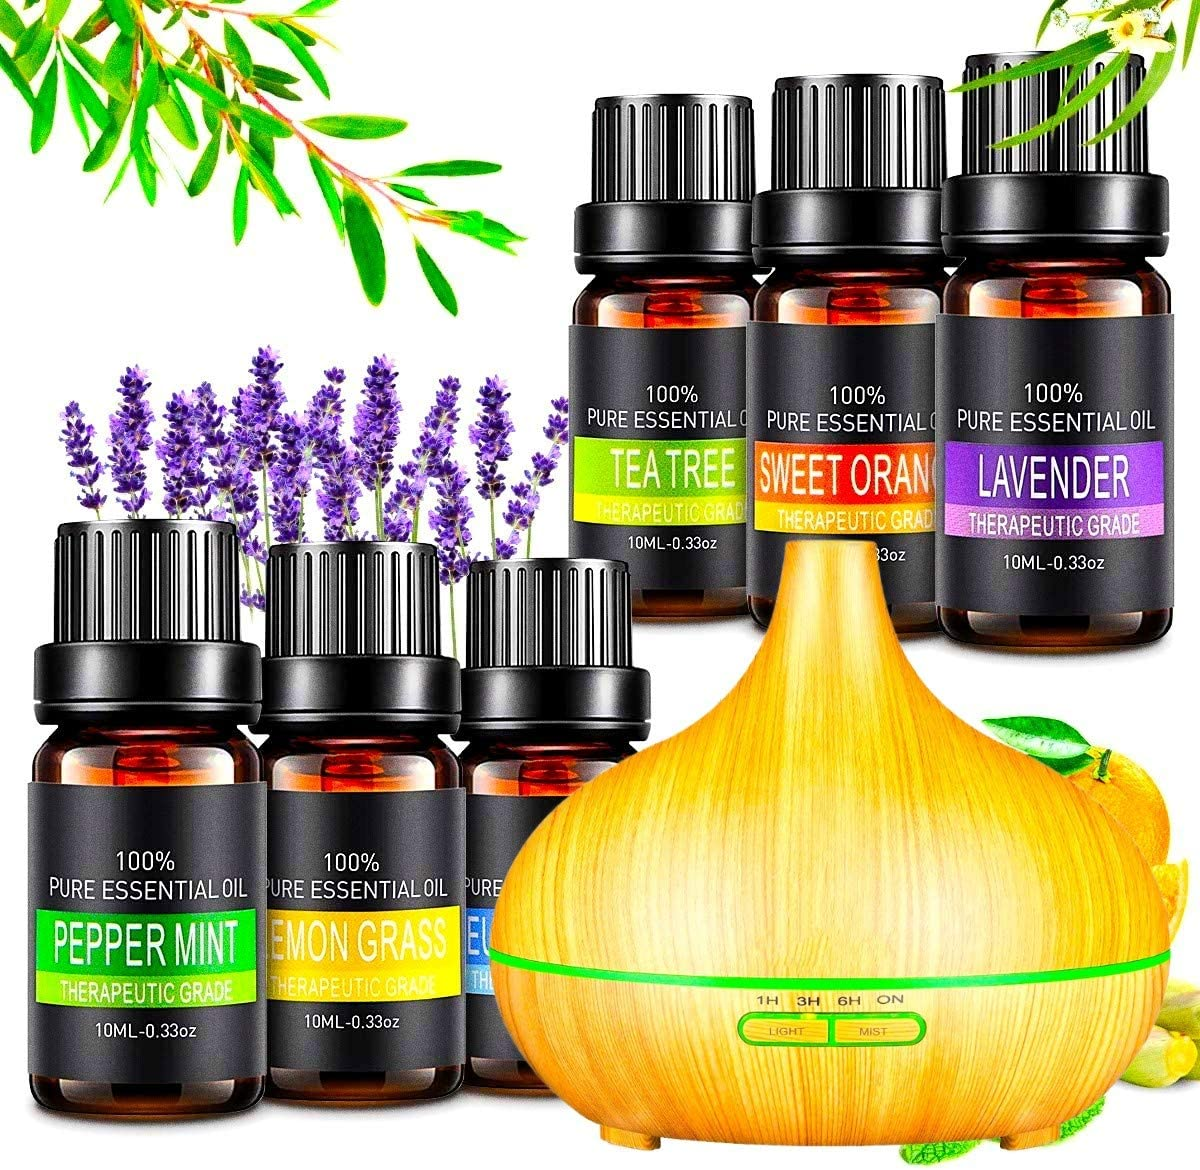 400ml Essential Oil Diffusers for Aromatherapy, Lavender Oil